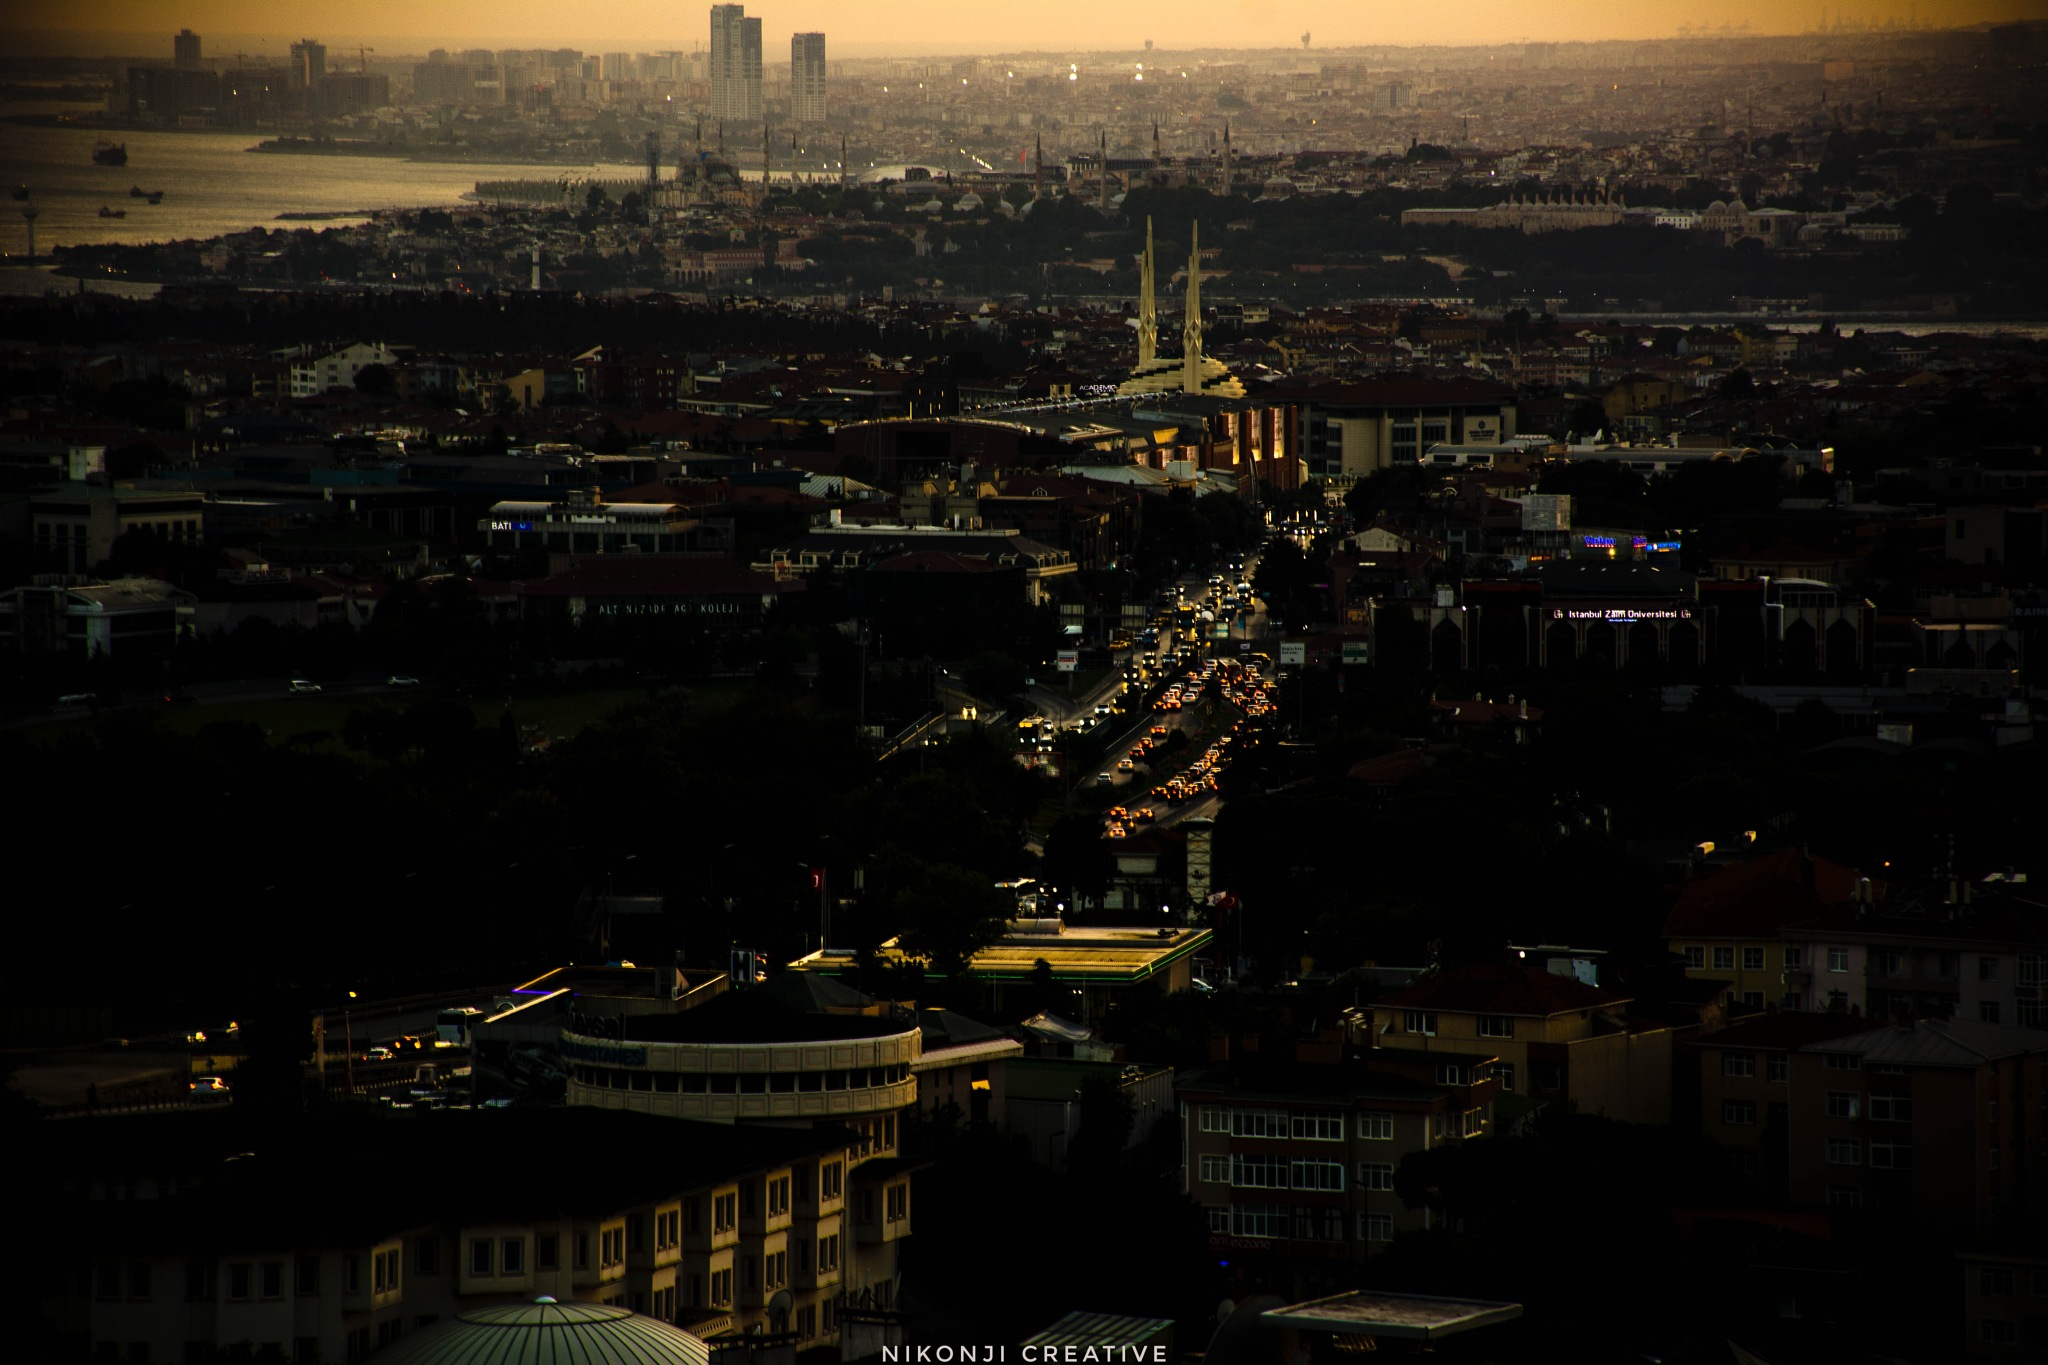 life of istanbul by Mazen Nusair